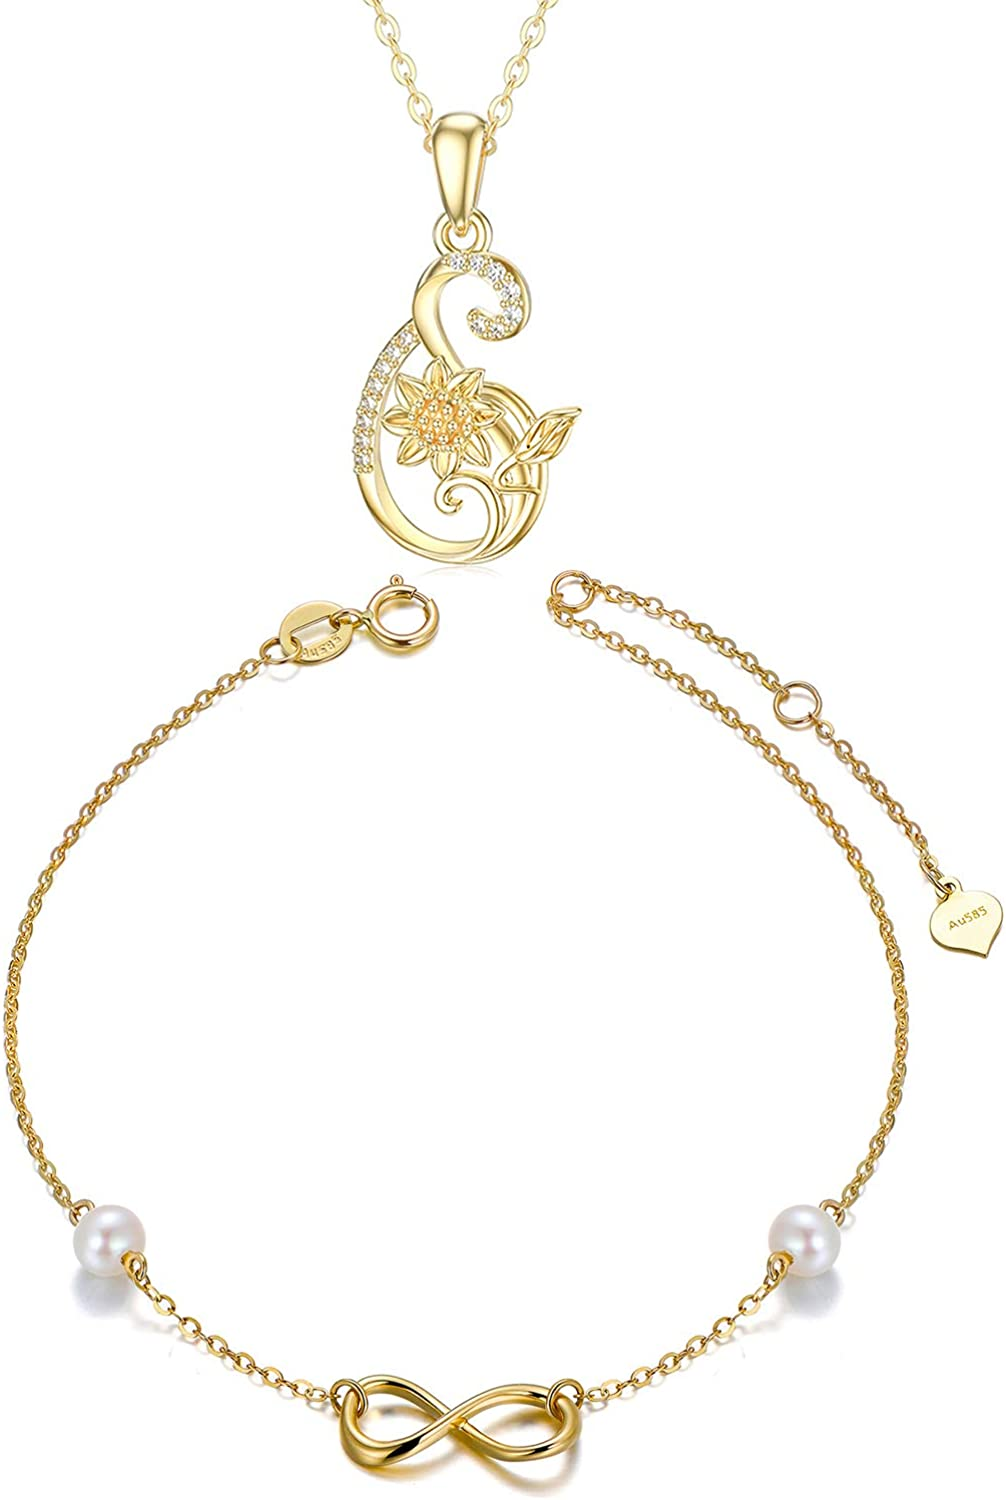 14k Gold Infinity Love Jewelry for Women, Sunflower Necklace and Pearl Bracelet Set